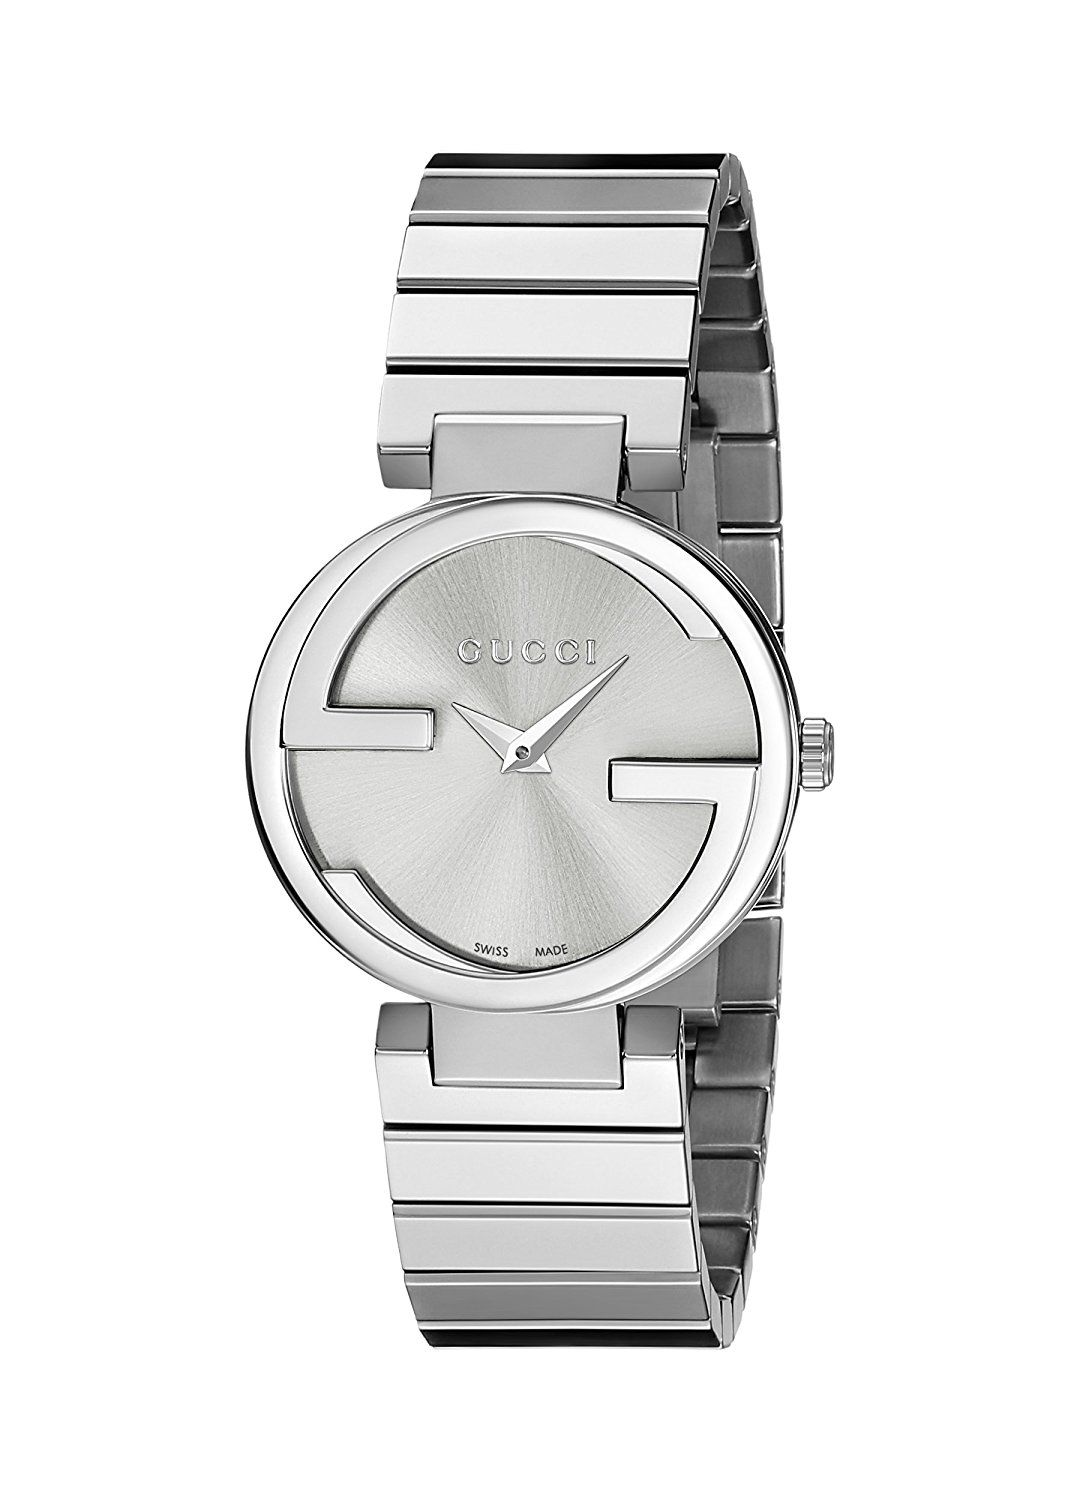 081c98ea81e Gucci Interlocking G Collection Women s Quartz Watch with Silver Dial  Analogue Display and Stainless Steel Bracelet YA133503